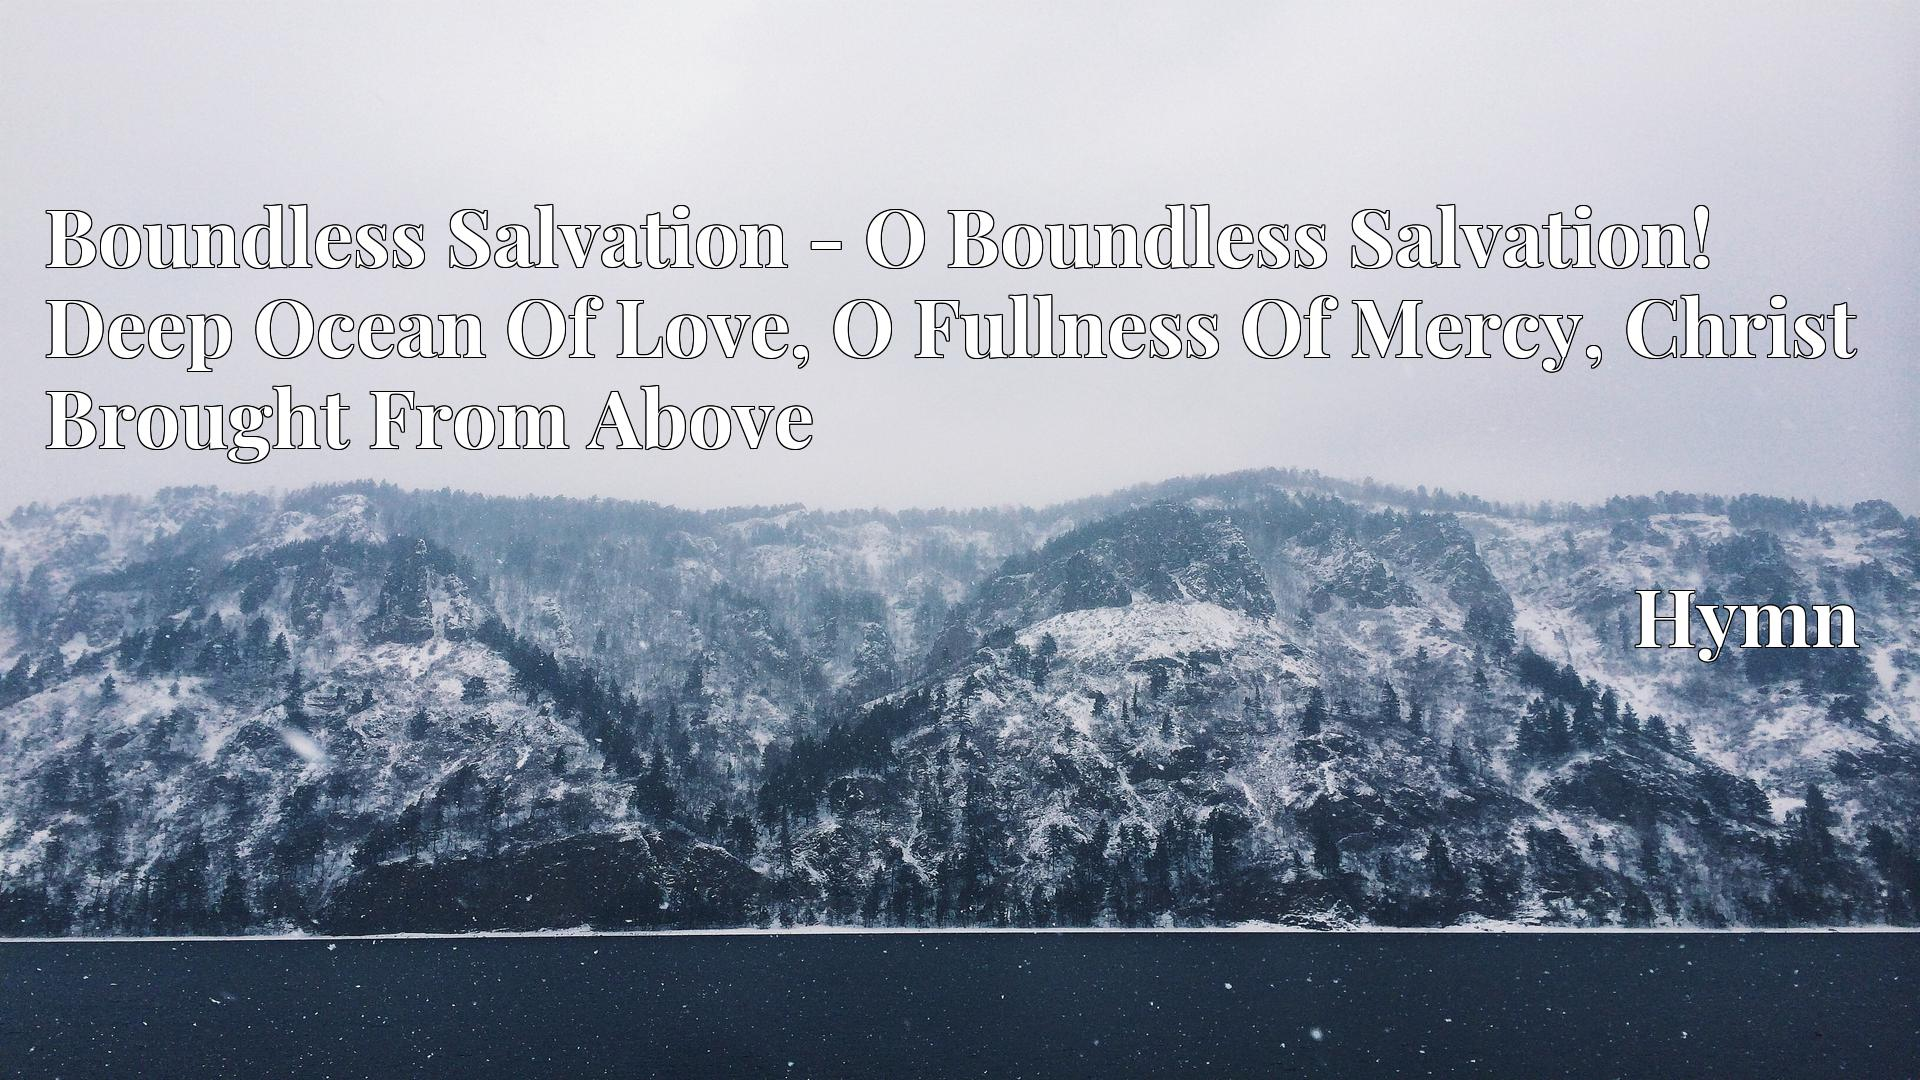 Boundless Salvation - O Boundless Salvation! Deep Ocean Of Love, O Fullness Of Mercy, Christ Brought From Above - Hymn